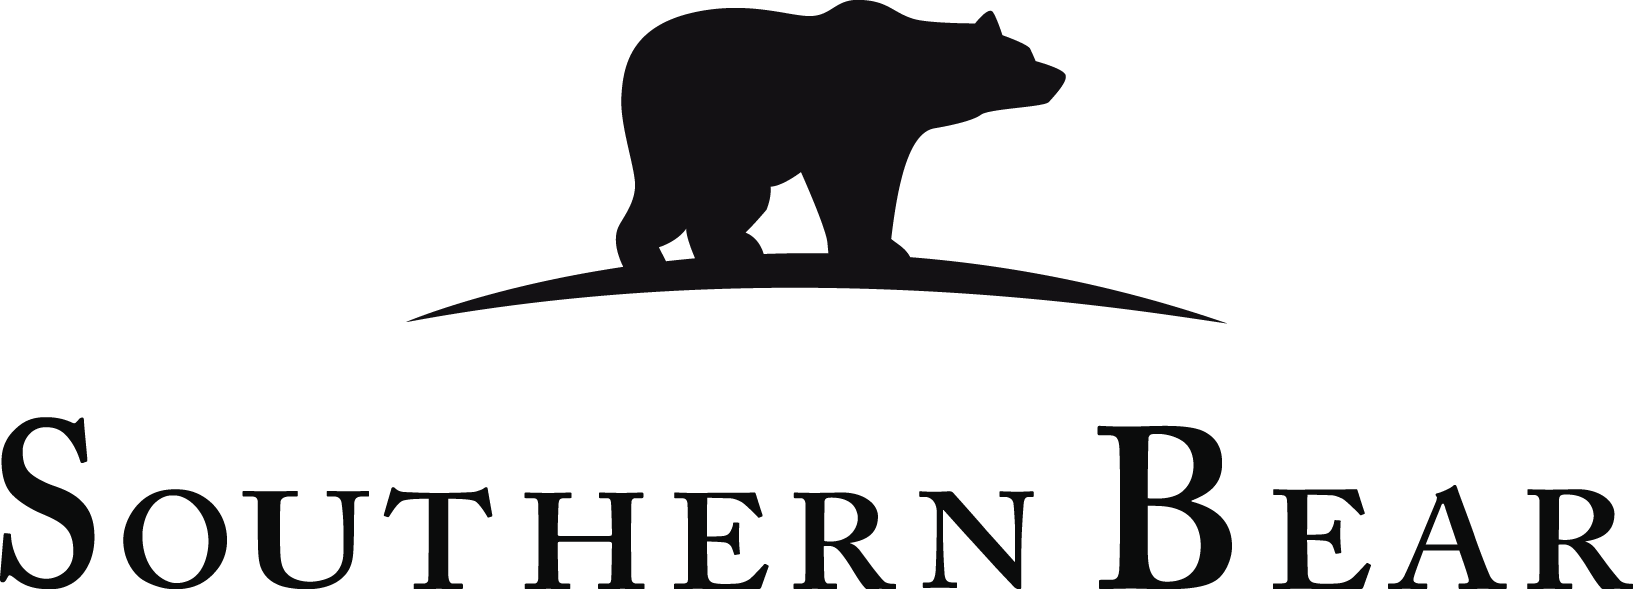 cropped-SOUTHERN-BEAR-LOGOTIPO.png